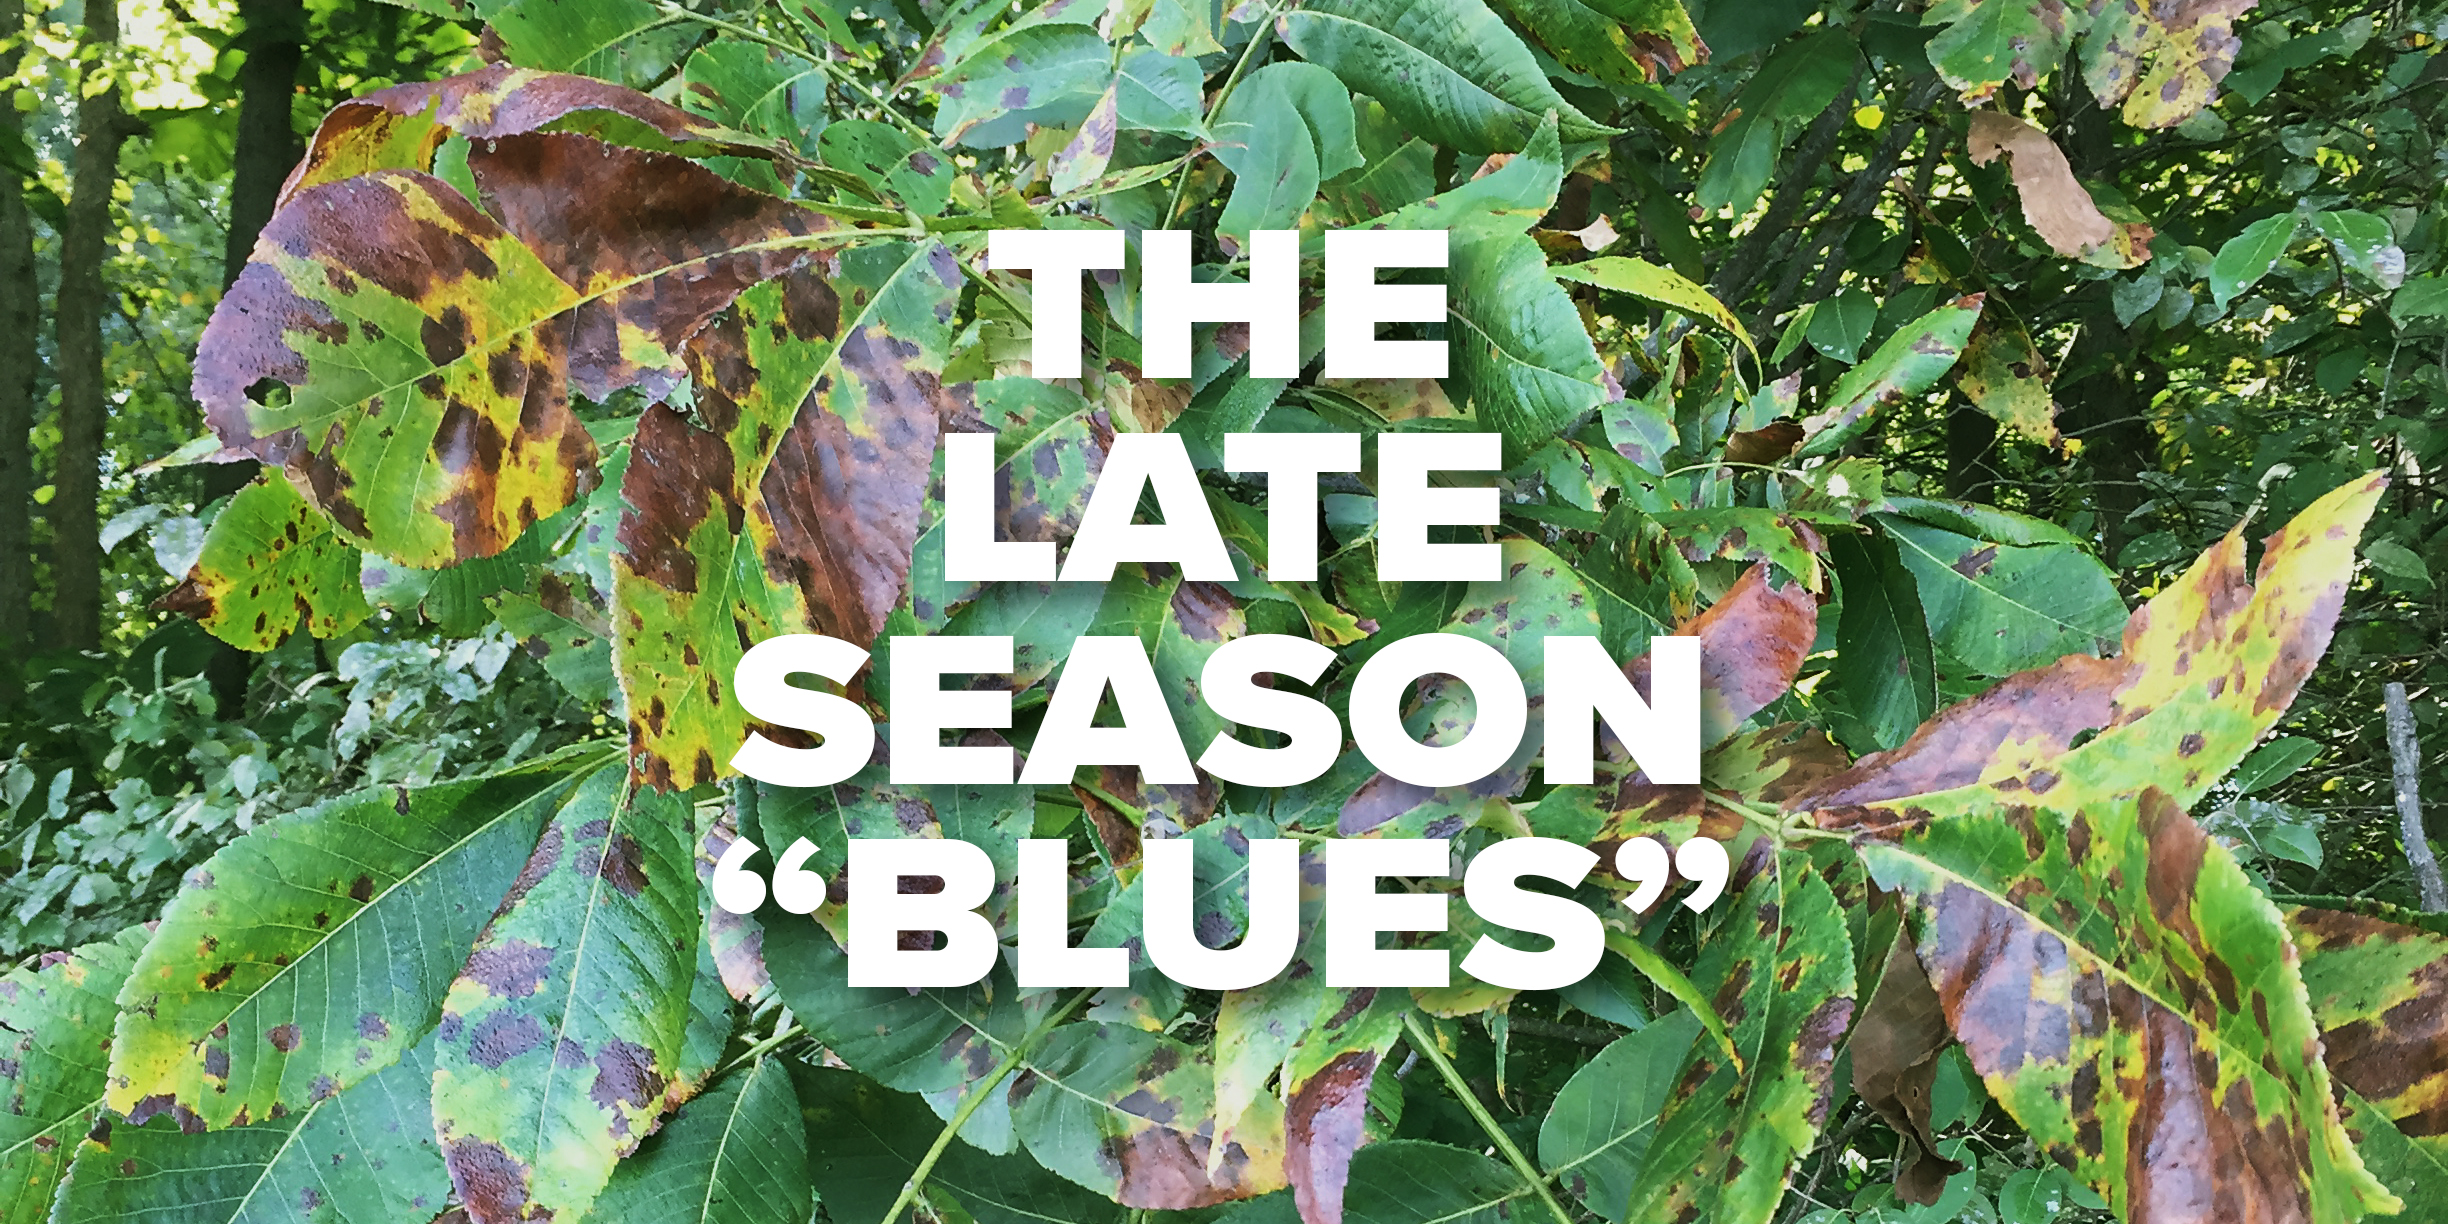 181001_rte_late_season_blues_04-v2.jpg